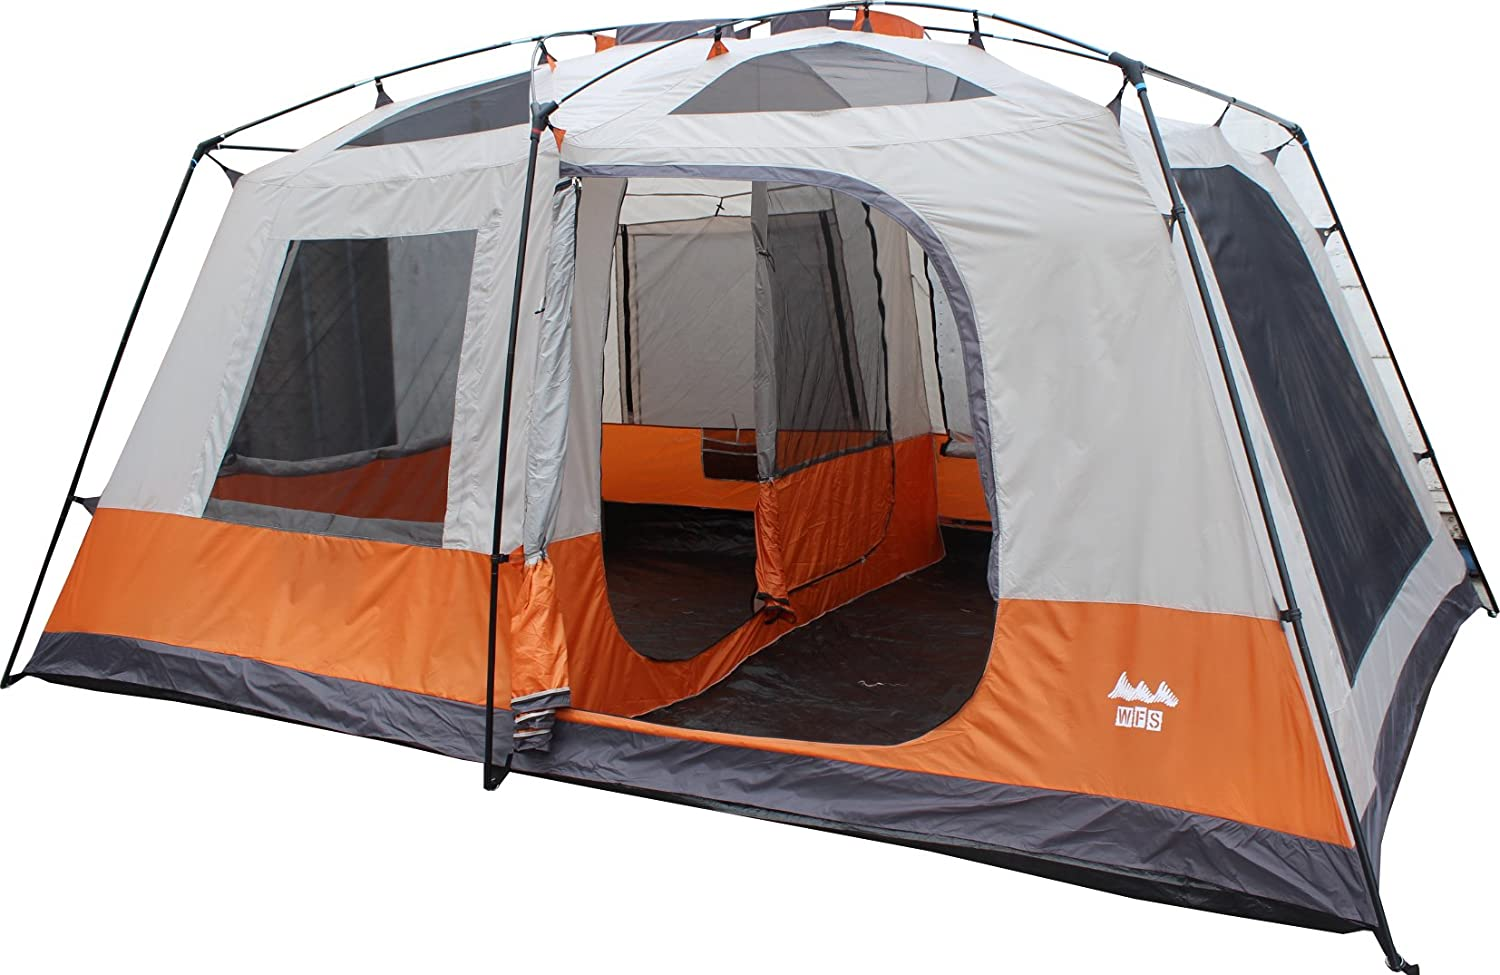 CDM product World Famous Sports TNT-10 8-Person 2-Room Cabin Camping Tent big image